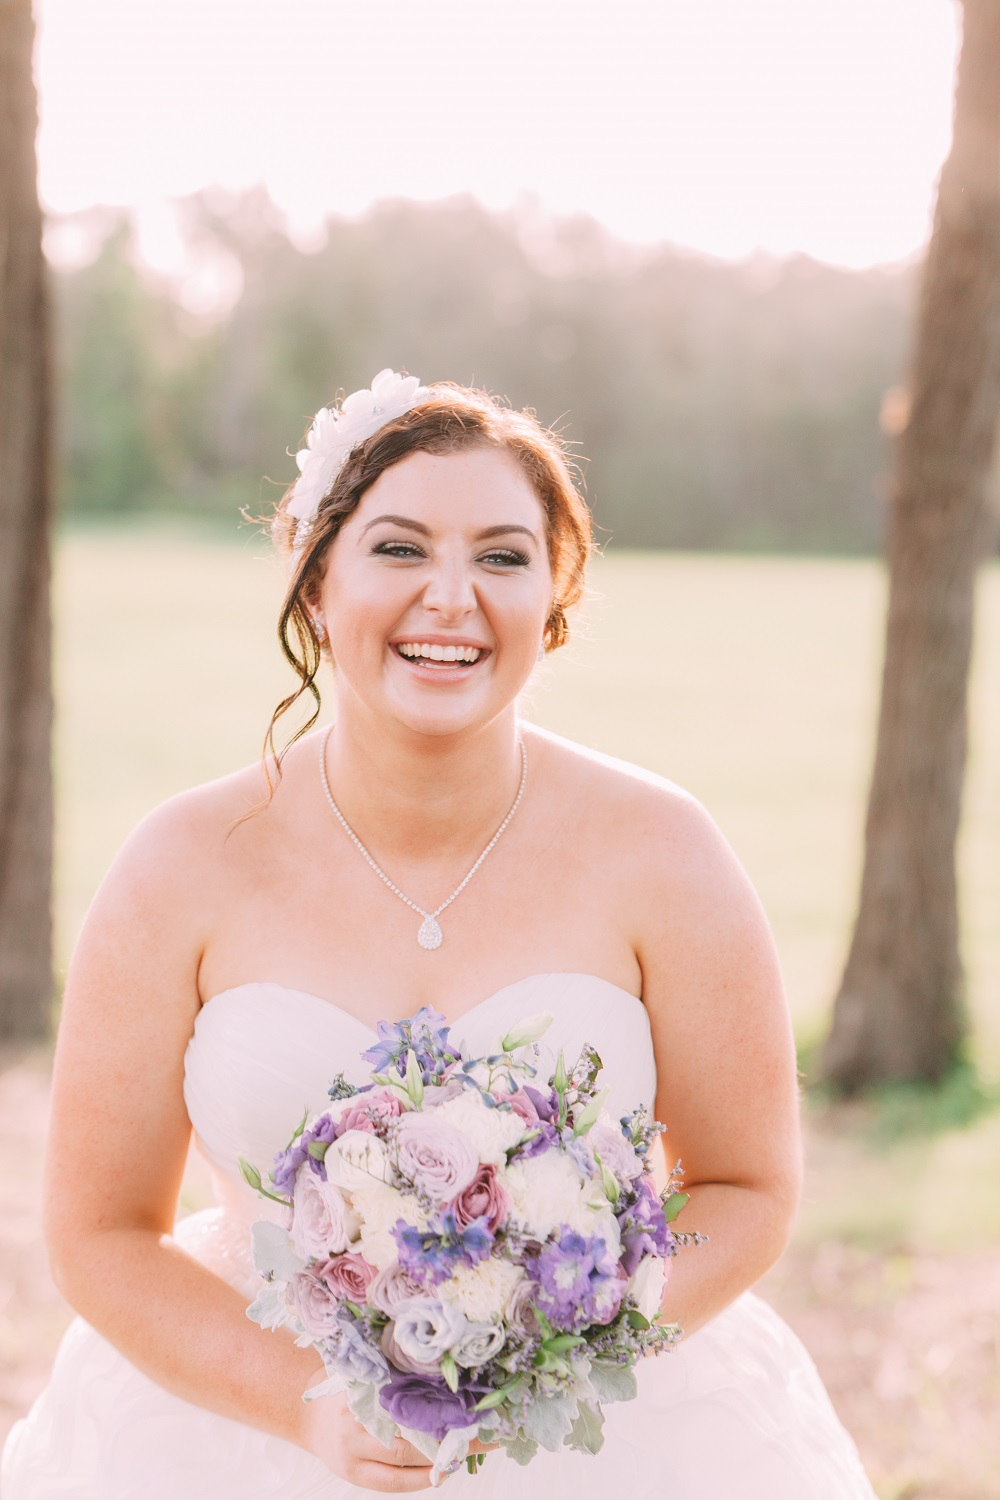 Bride smiling holding bouquet of flowers